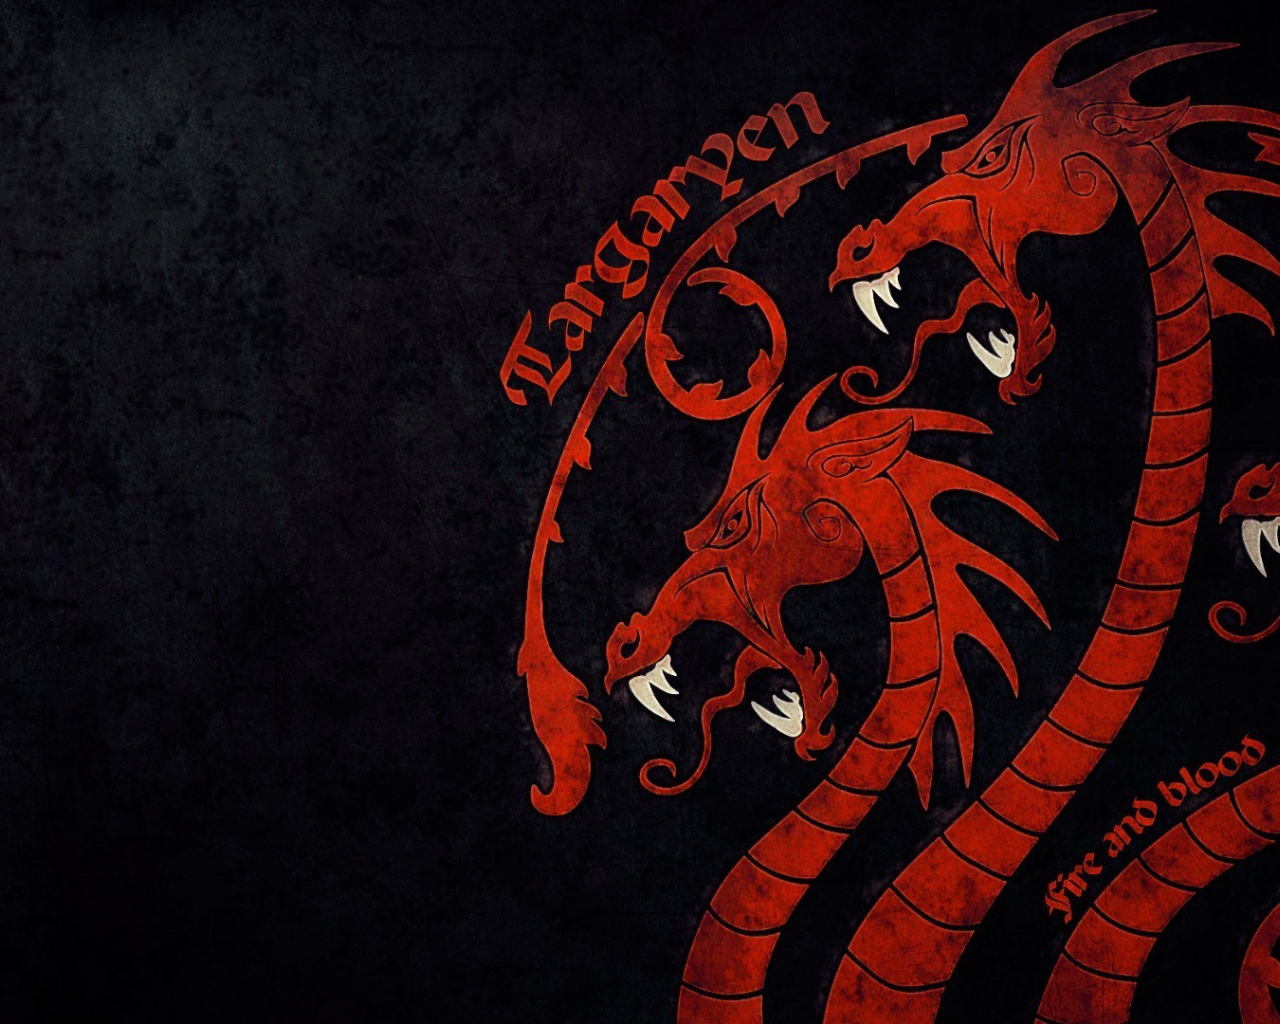 Free Download Chinese Dragon On A Black Background Wallpapers And Images 1920x1080 For Your Desktop Mobile Tablet Explore 92 Chinese Dragons Wallpapers Chinese Dragons Wallpapers Wallpaper Dragons Dragons Wallpapers